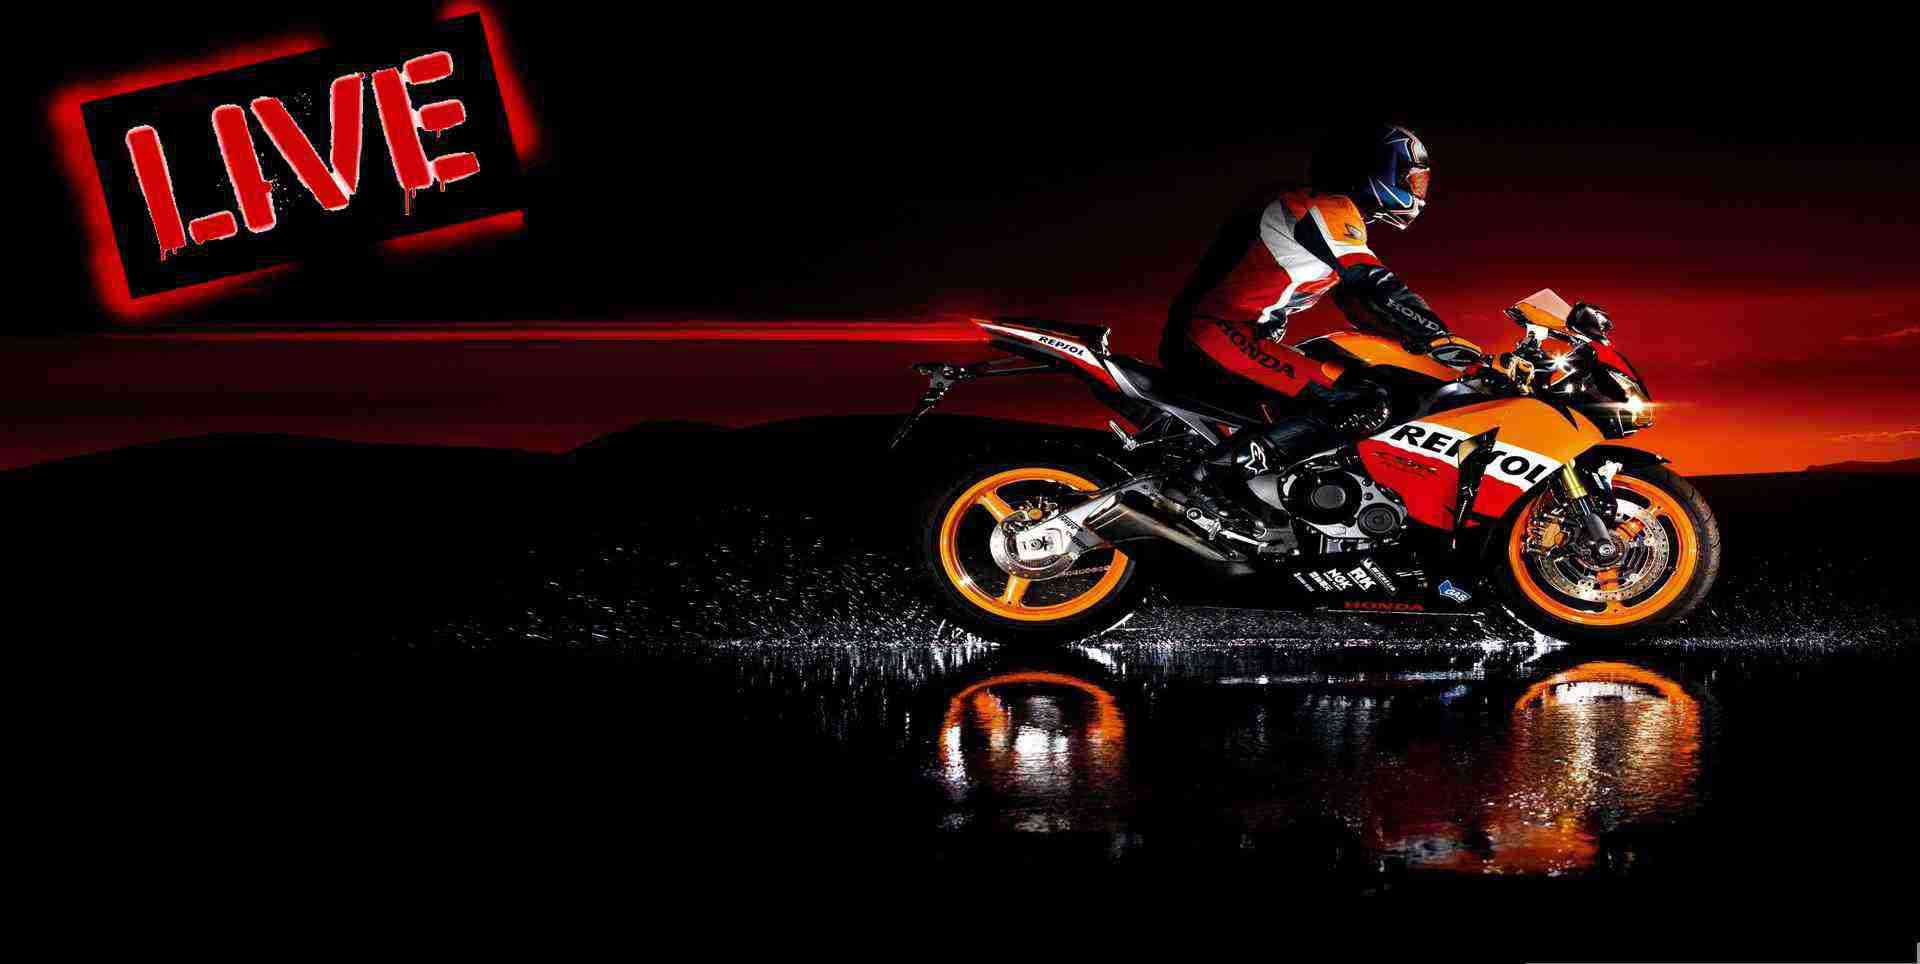 Motogp Grand Prix Of Netherlands 2015 Live Stream